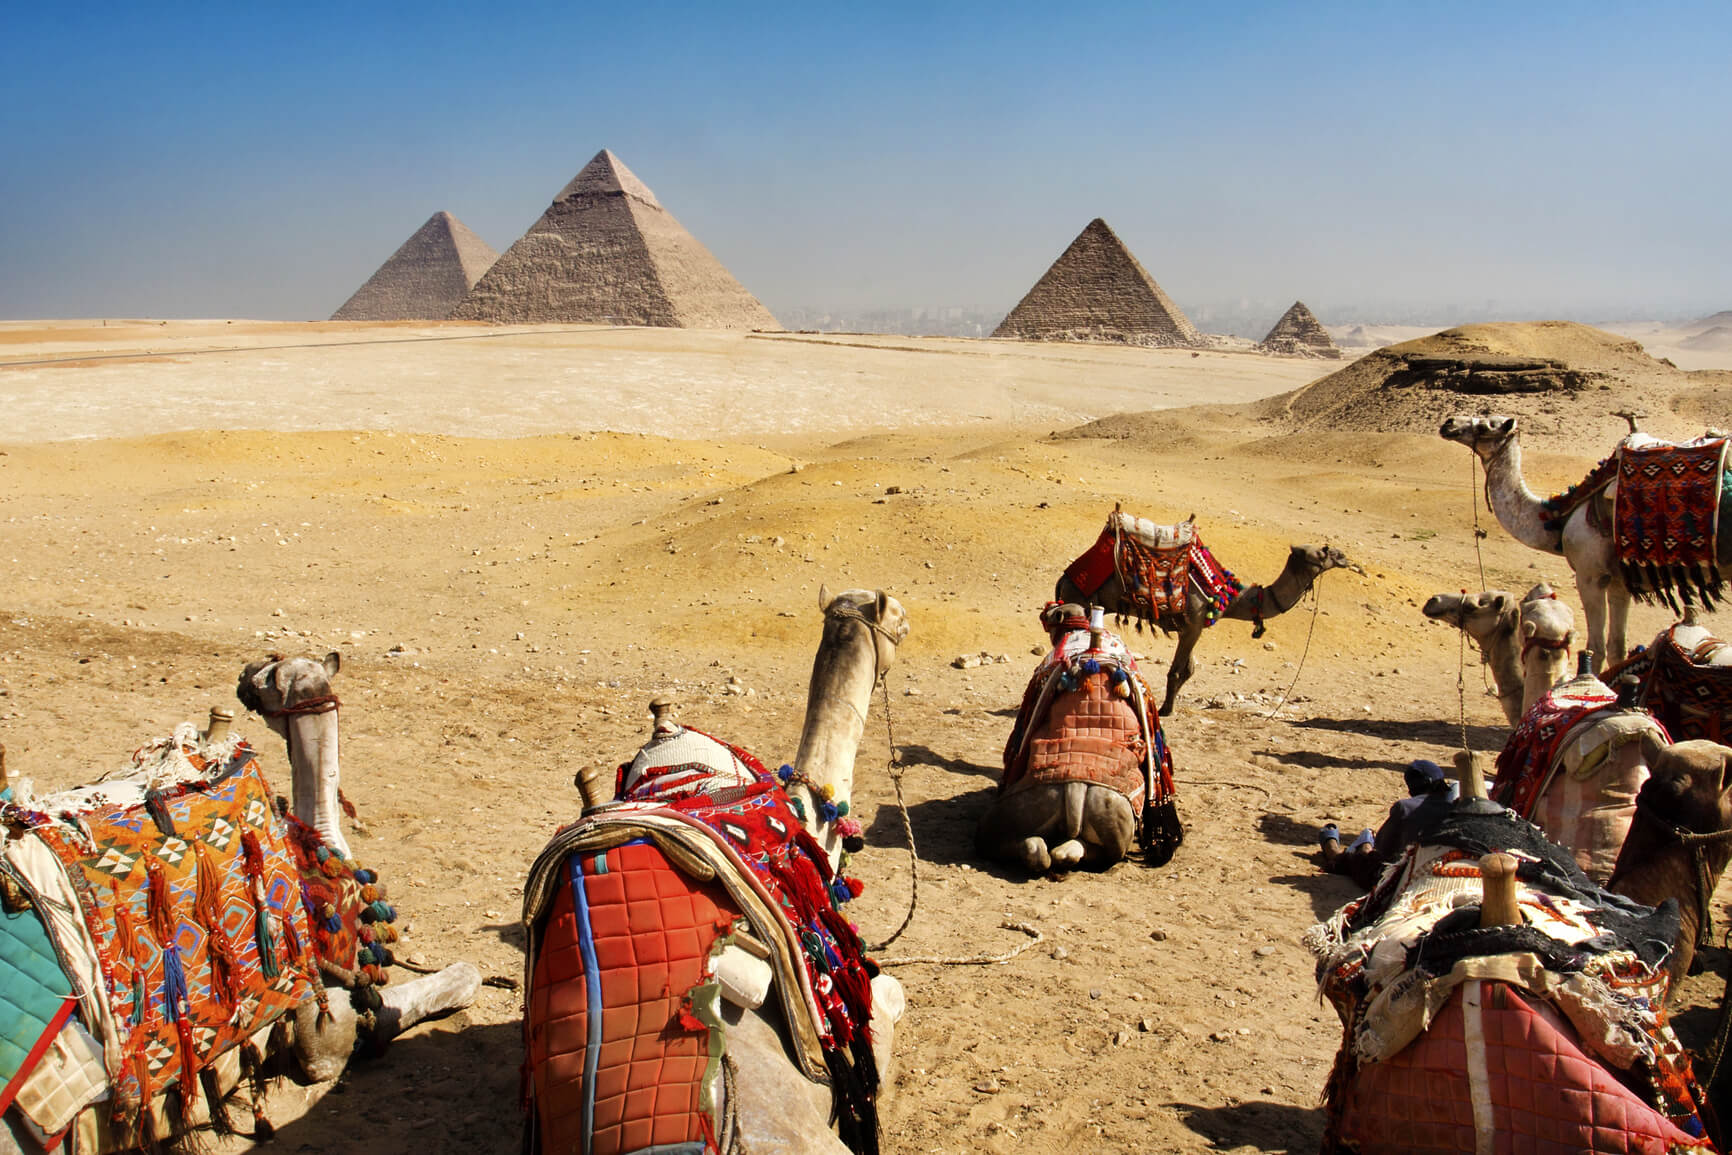 Non-stop from New York to Cairo, Egypt for only $548 roundtrip